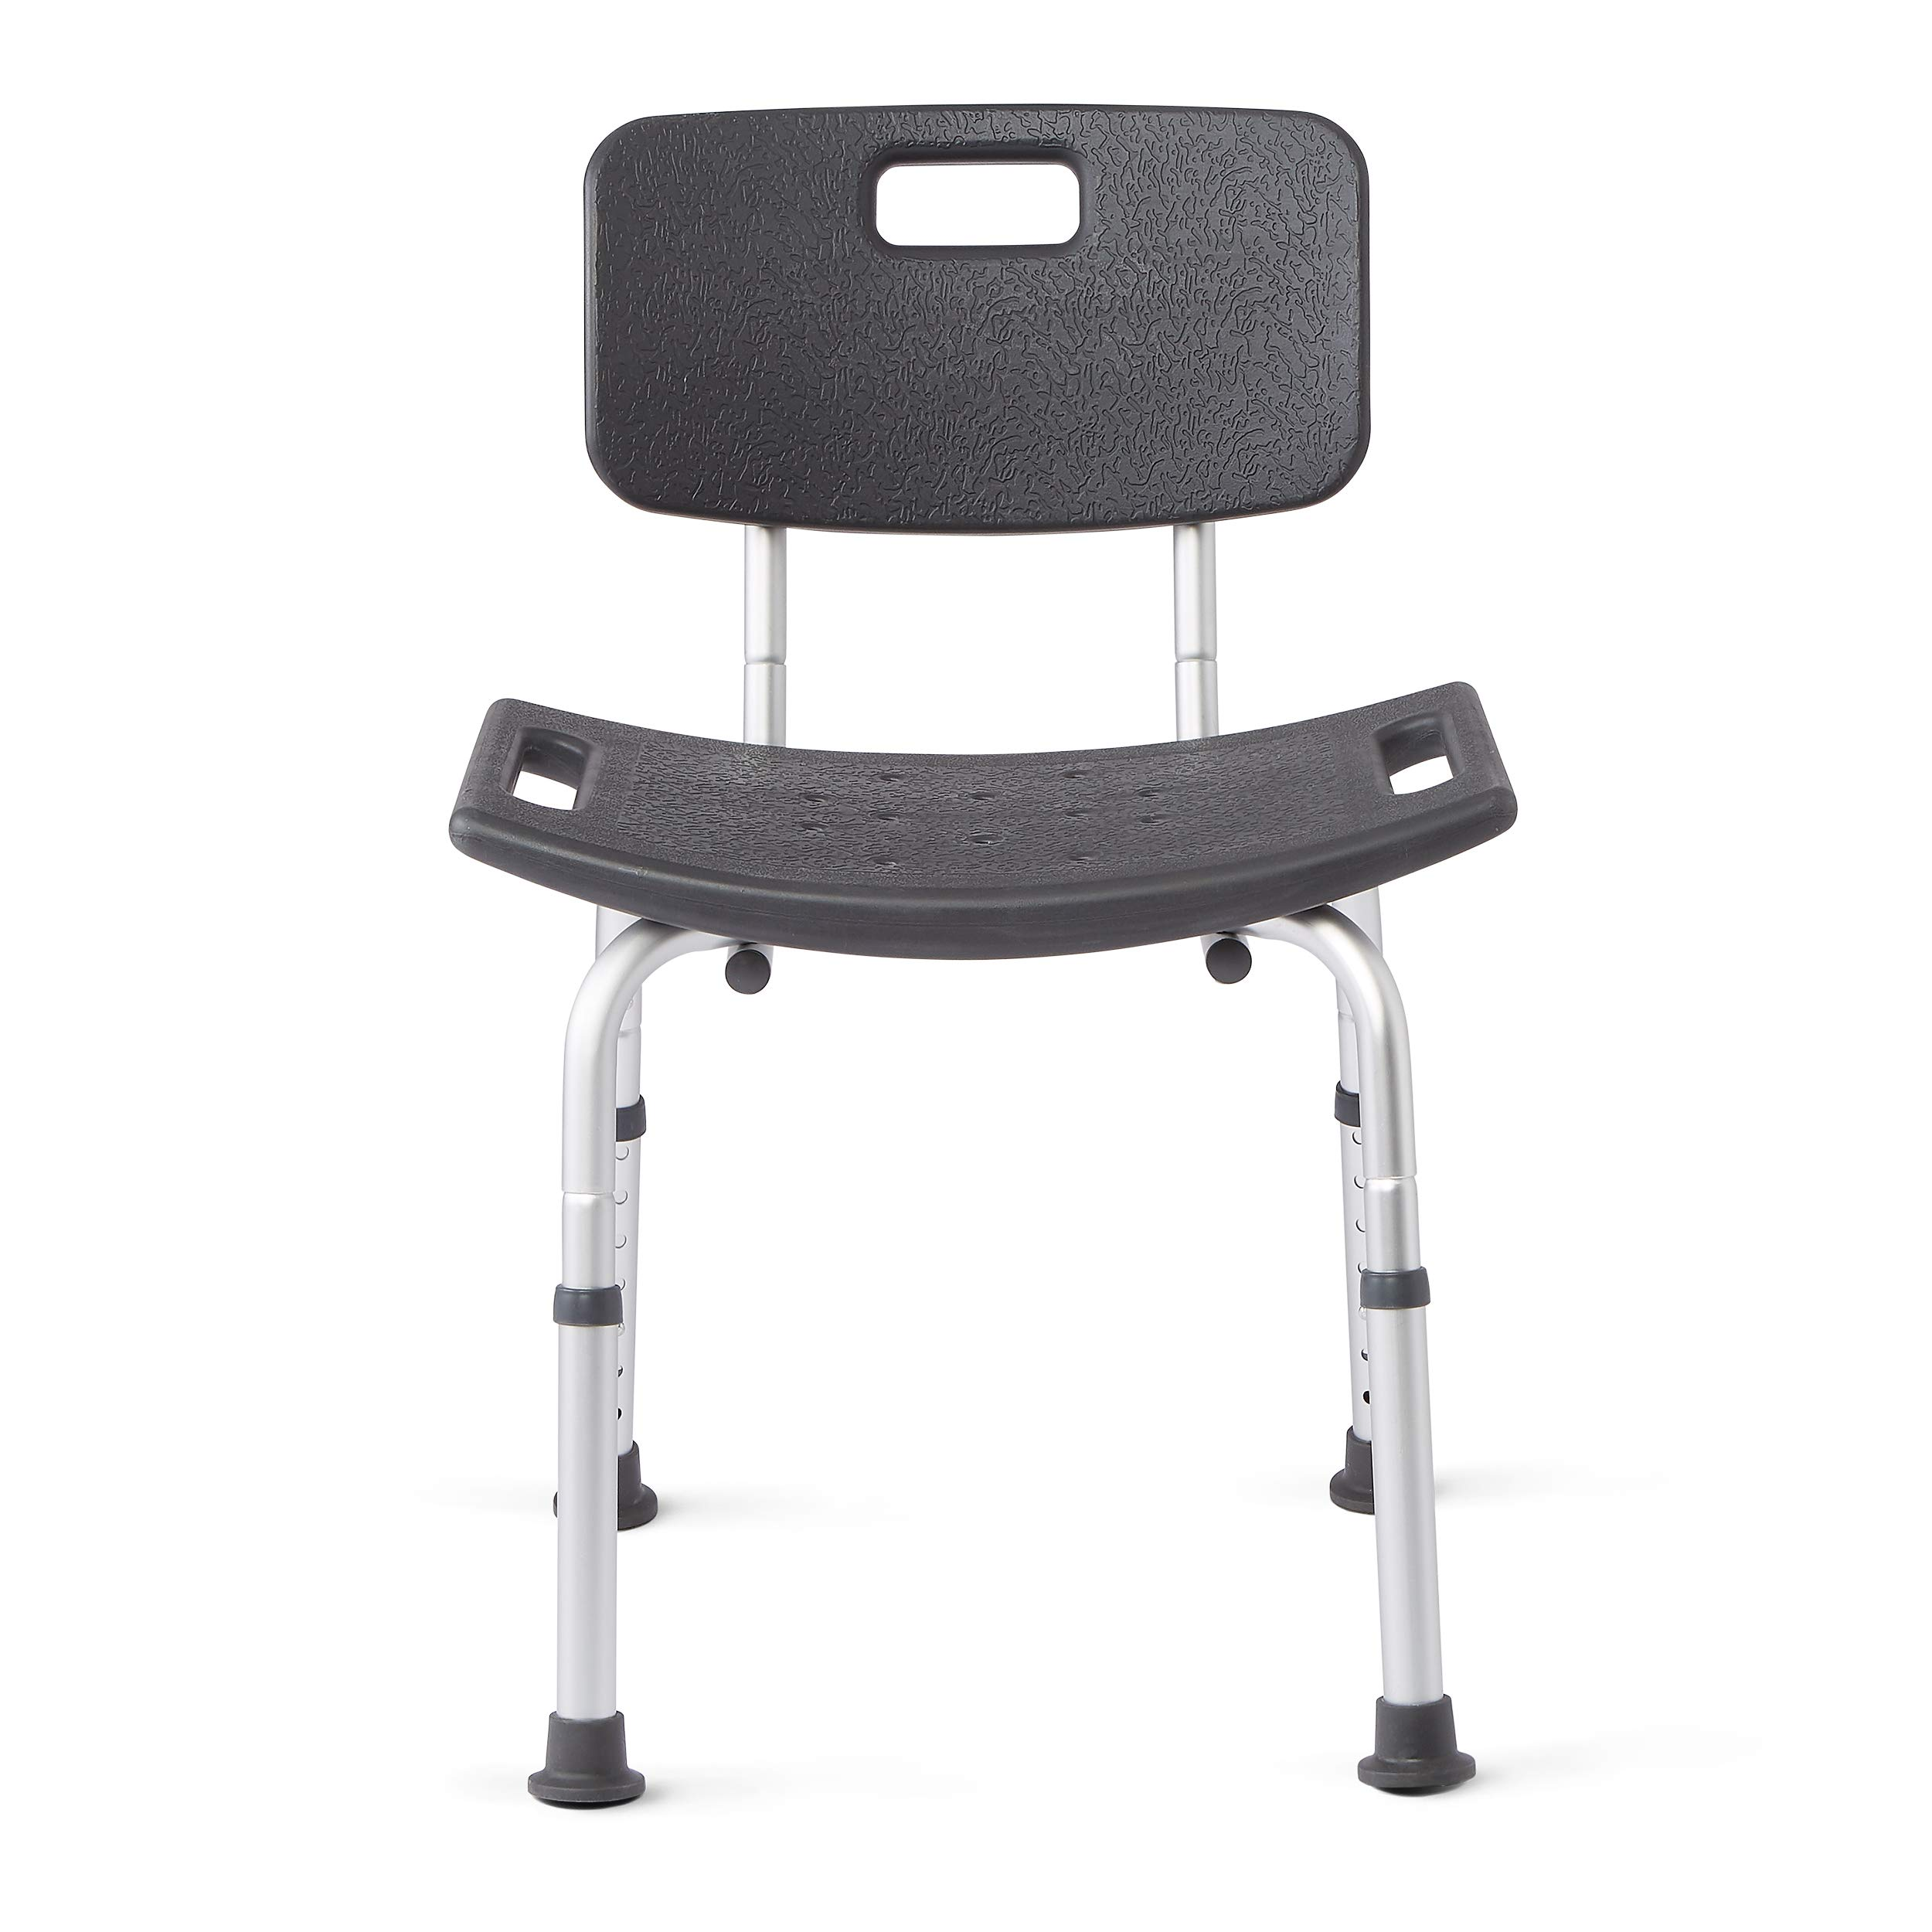 Stupendous Details About Medline Shower Chair Bath Bench With Back Supports Up To 300 Lb Infused With Gmtry Best Dining Table And Chair Ideas Images Gmtryco